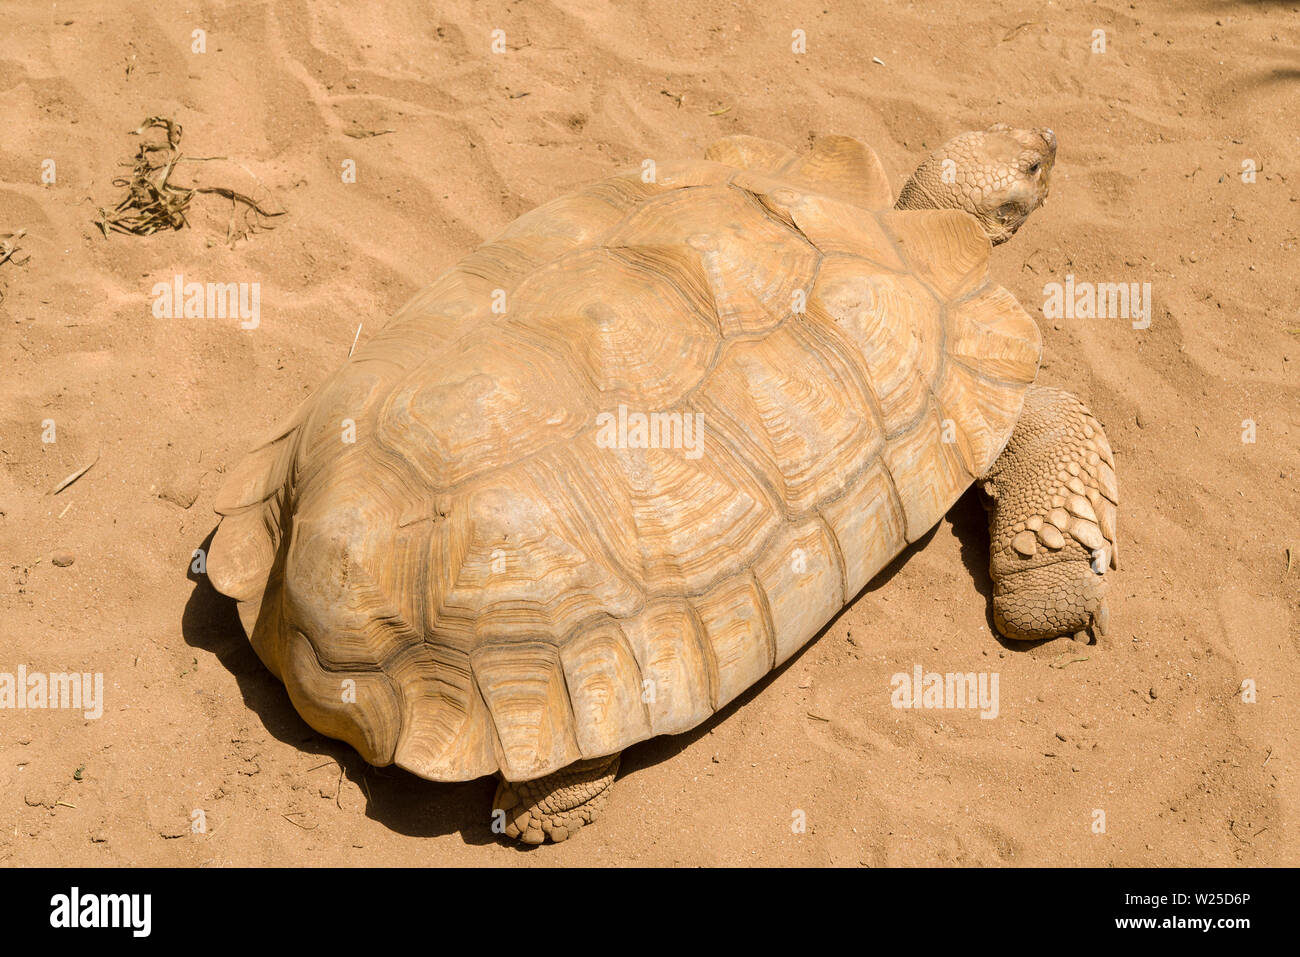 Big turtle on a sandy beach, Tenerife island. Endangered species of turtles - Stock Image